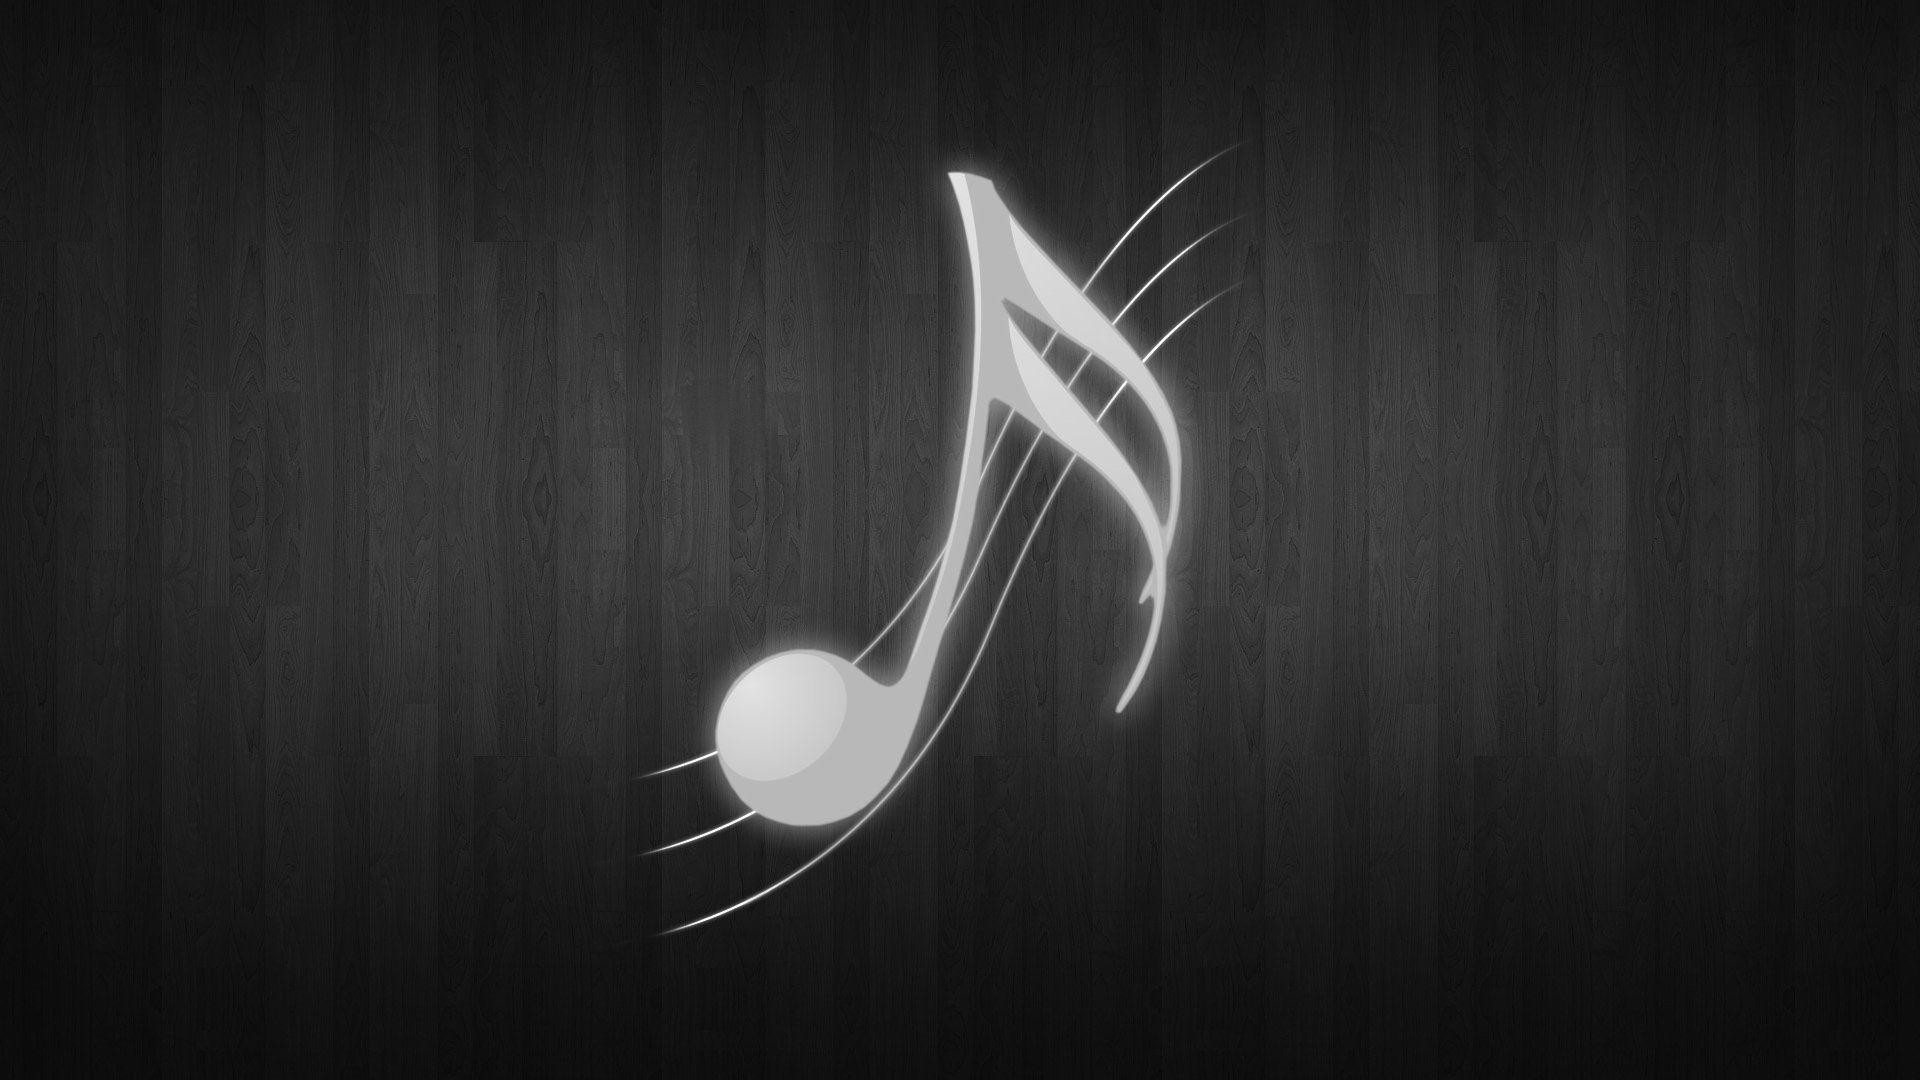 Music Notes Wallpaper: Music Note Wallpapers ·① WallpaperTag